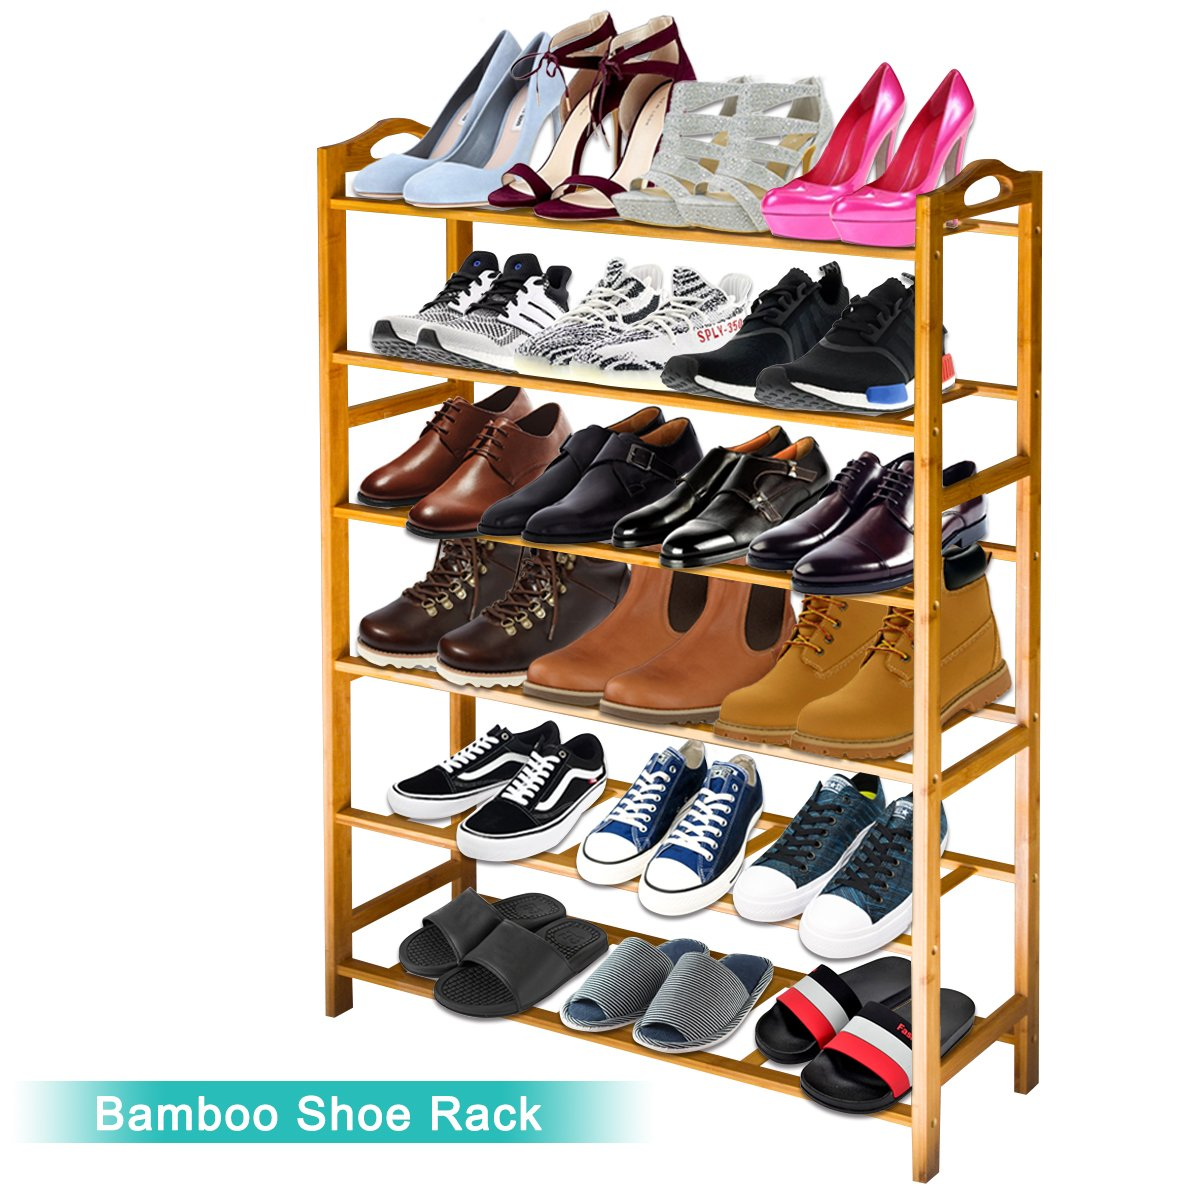 ANKO Bamboo Shoe Rack, 100% Natural Bamboo Thickened 6-Tier Mesh Utility Entryway Shoe Shelf Storage Organizer Suitable for Entryway, Closet, Living Room, Bedroom. (1 PACK) by ANKO (Image #2)